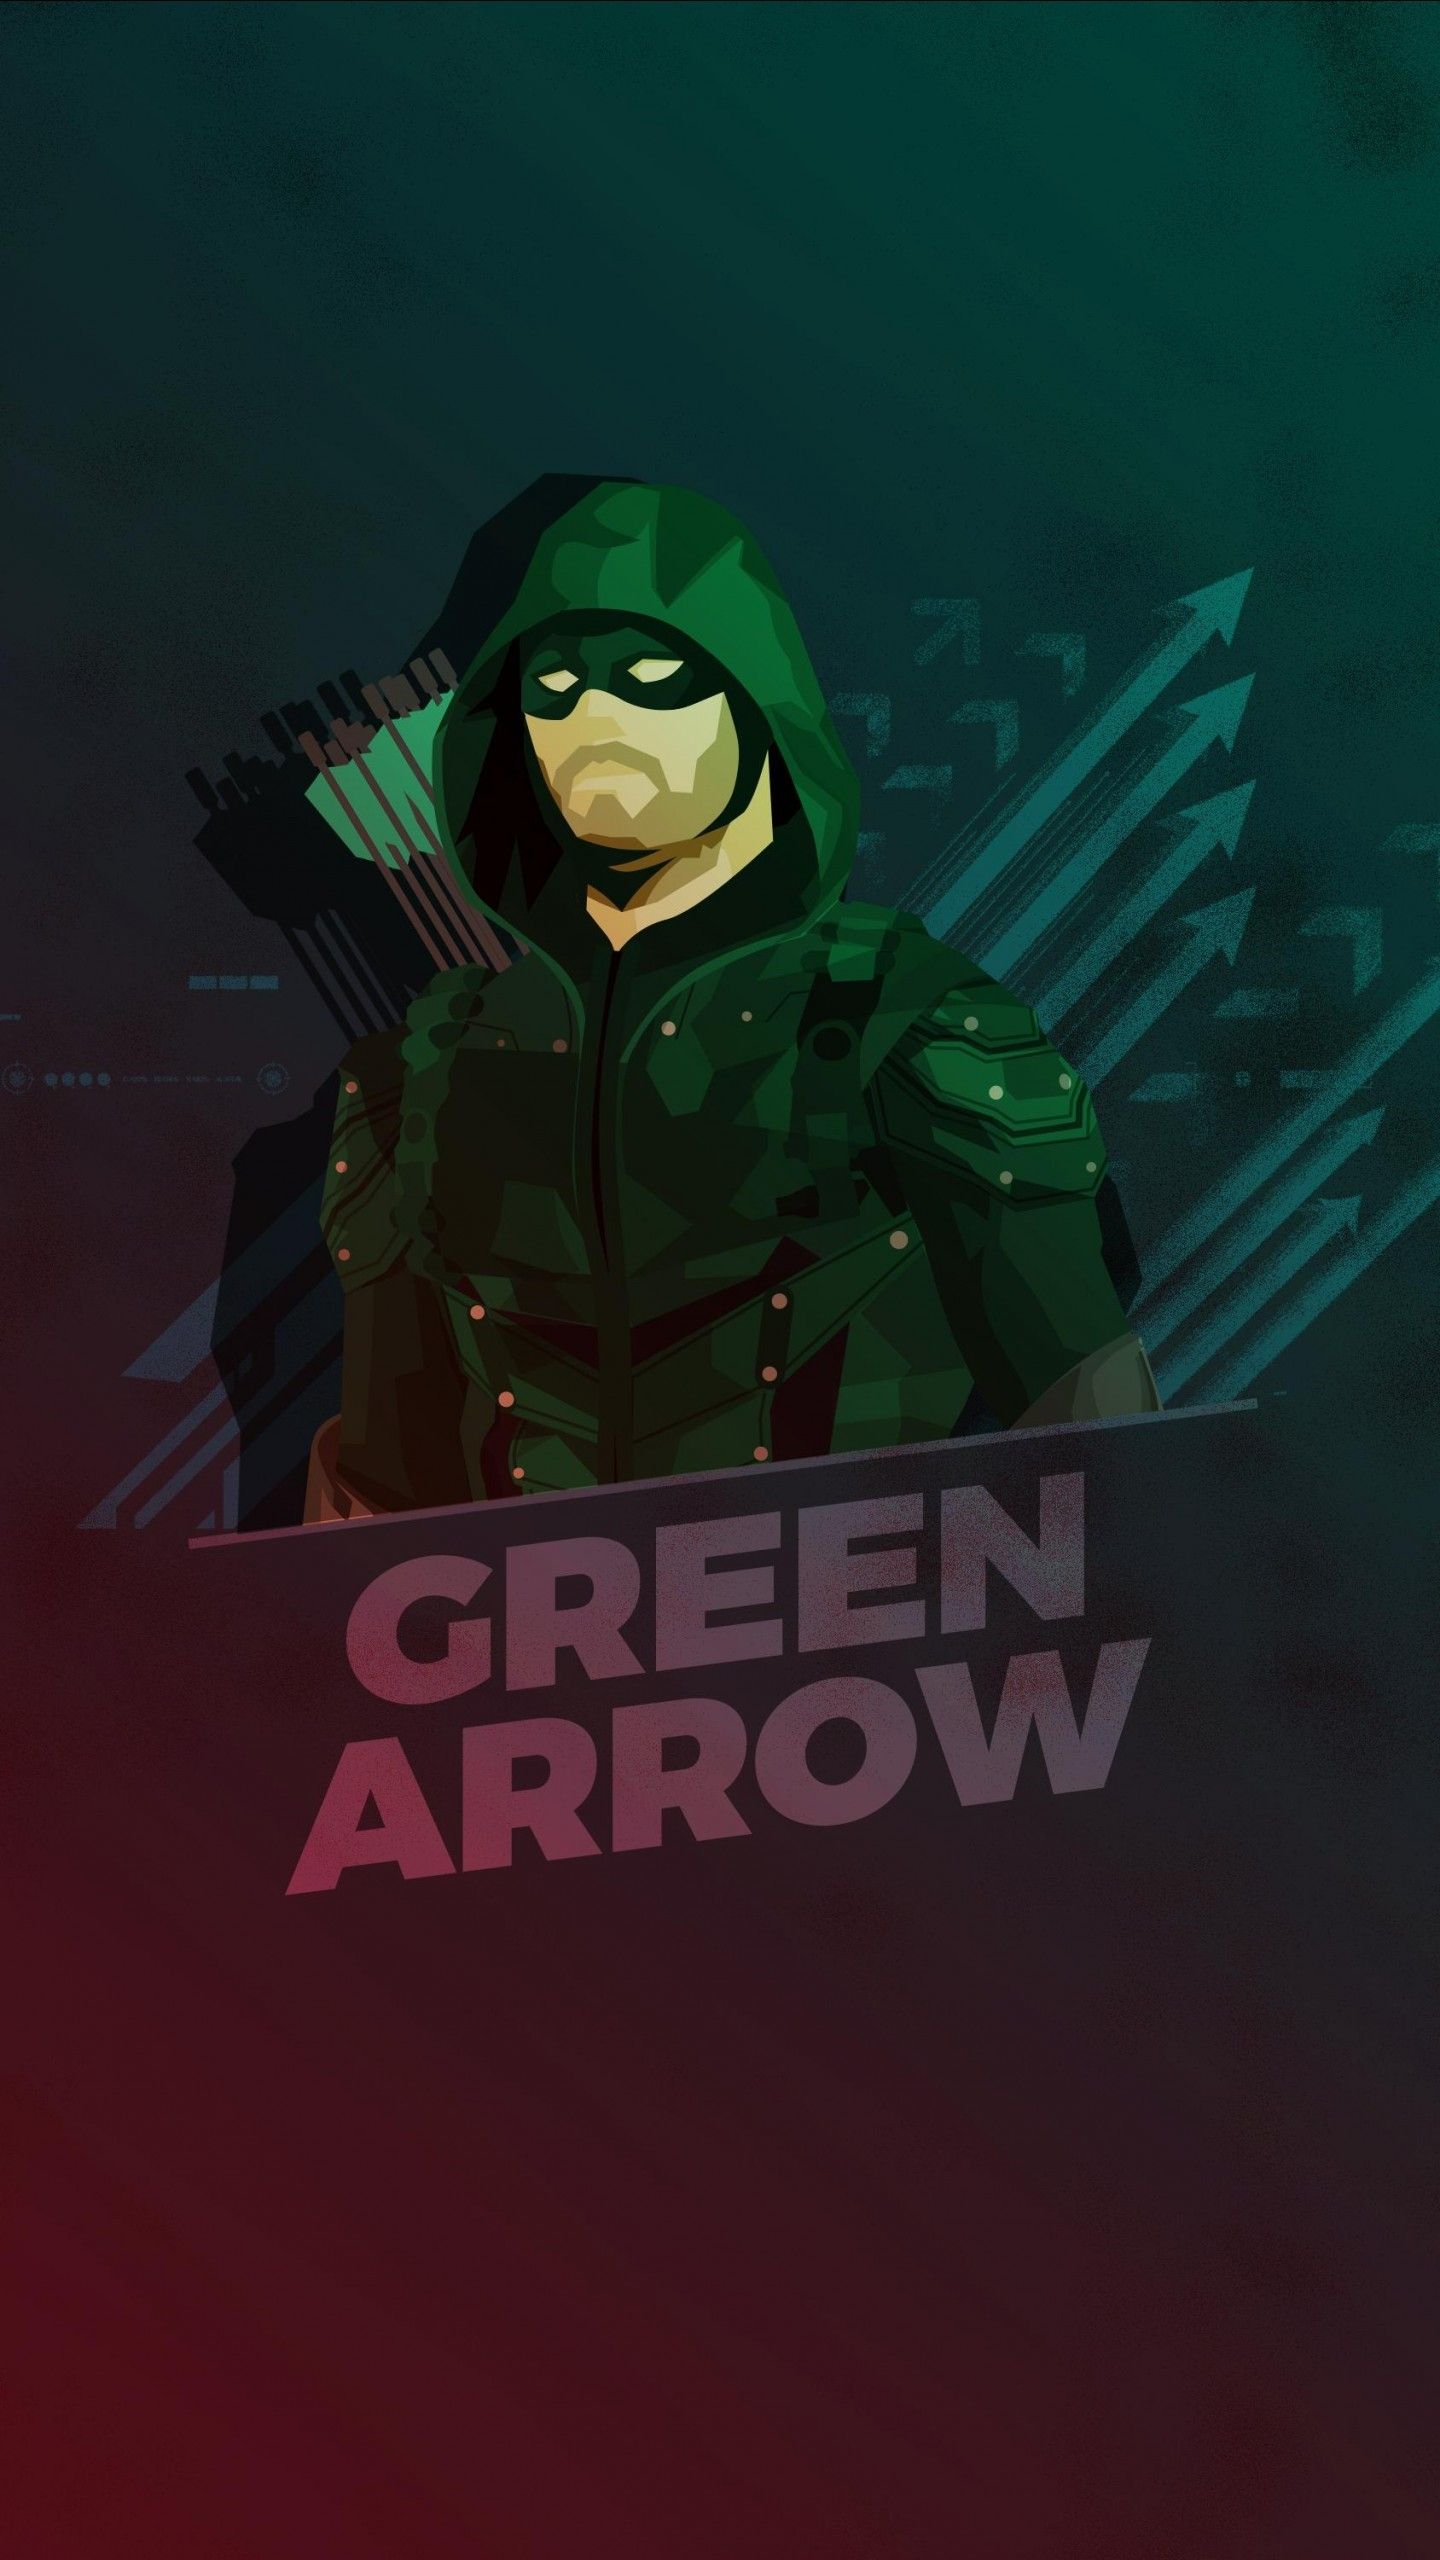 Arrow Iphone Wallpapers Top Free Arrow Iphone Backgrounds Wallpaperaccess